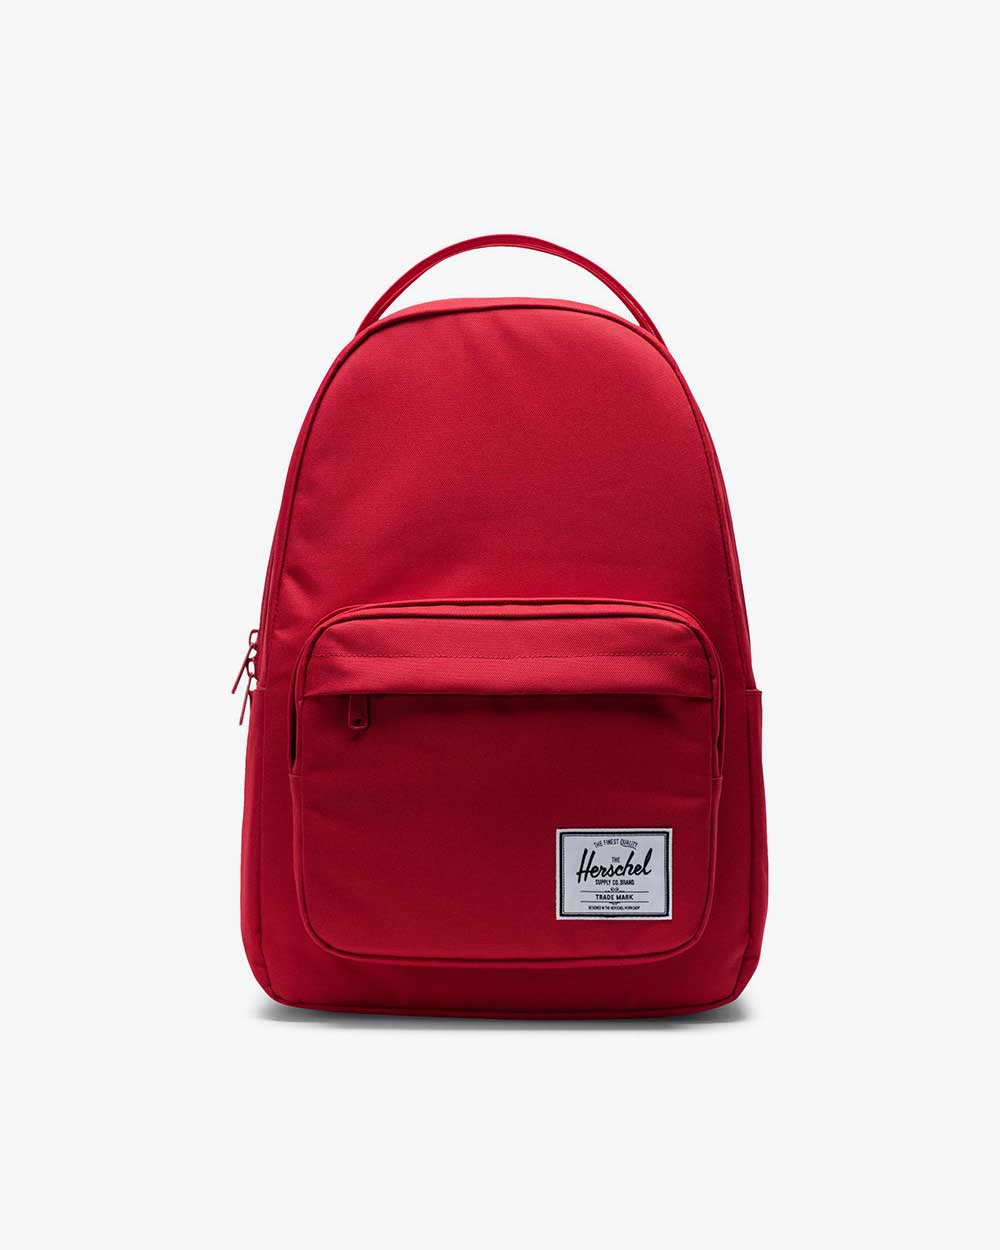 Backpacks Category